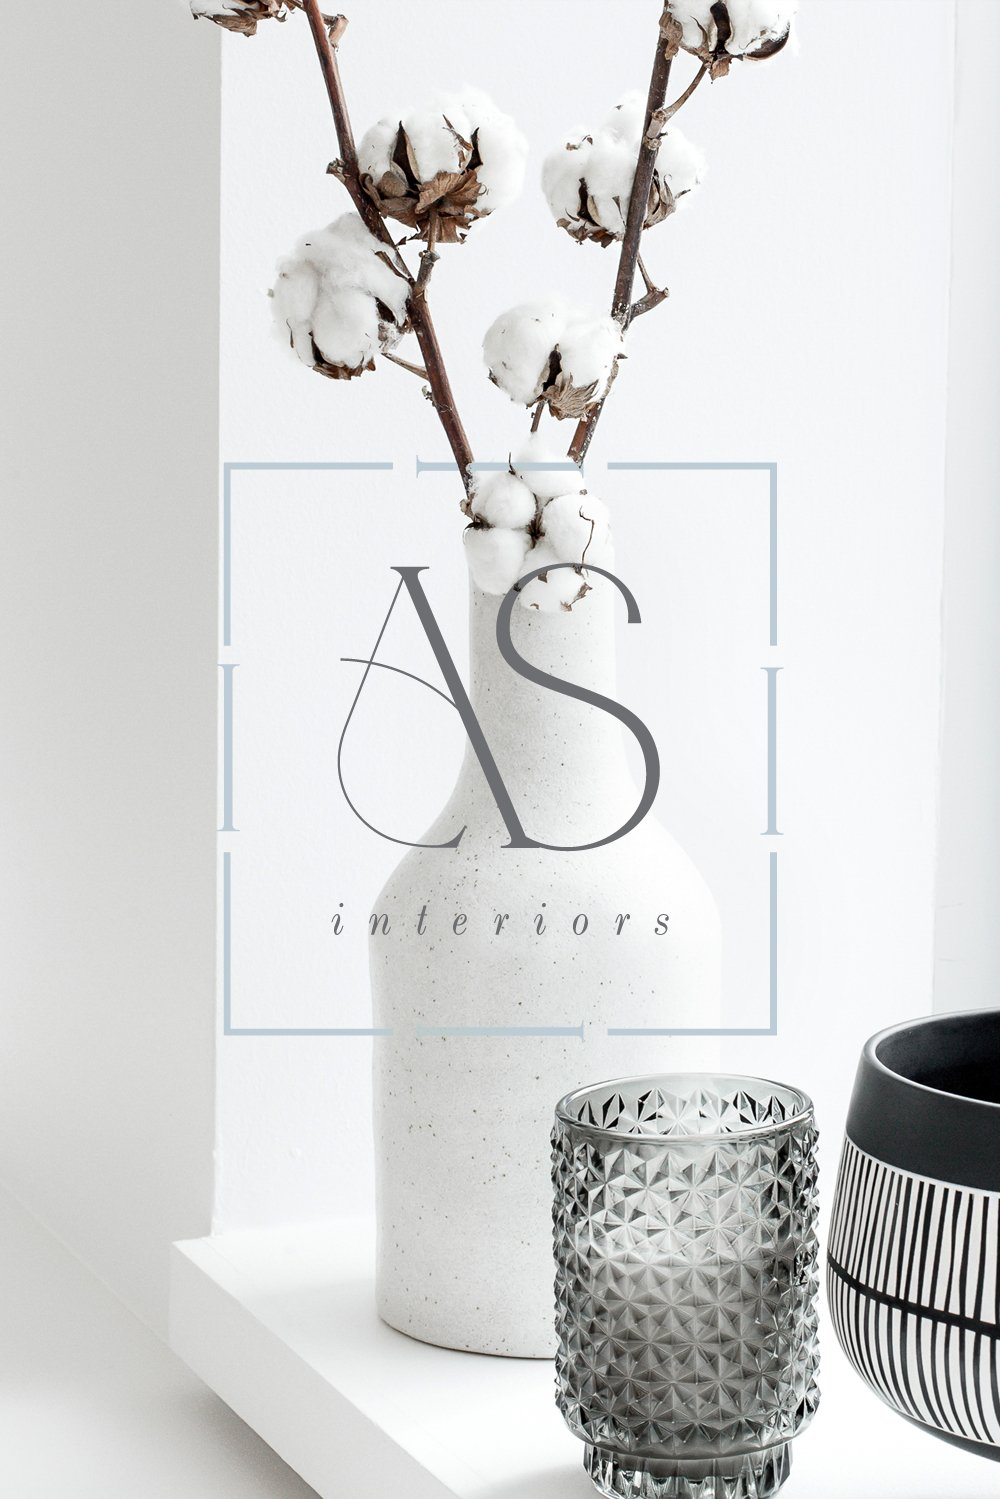 One of the brand marks for Ana Santos Interiors by Fancy Girl Designs | accessible luxury for an interior design brand with modern creative touches